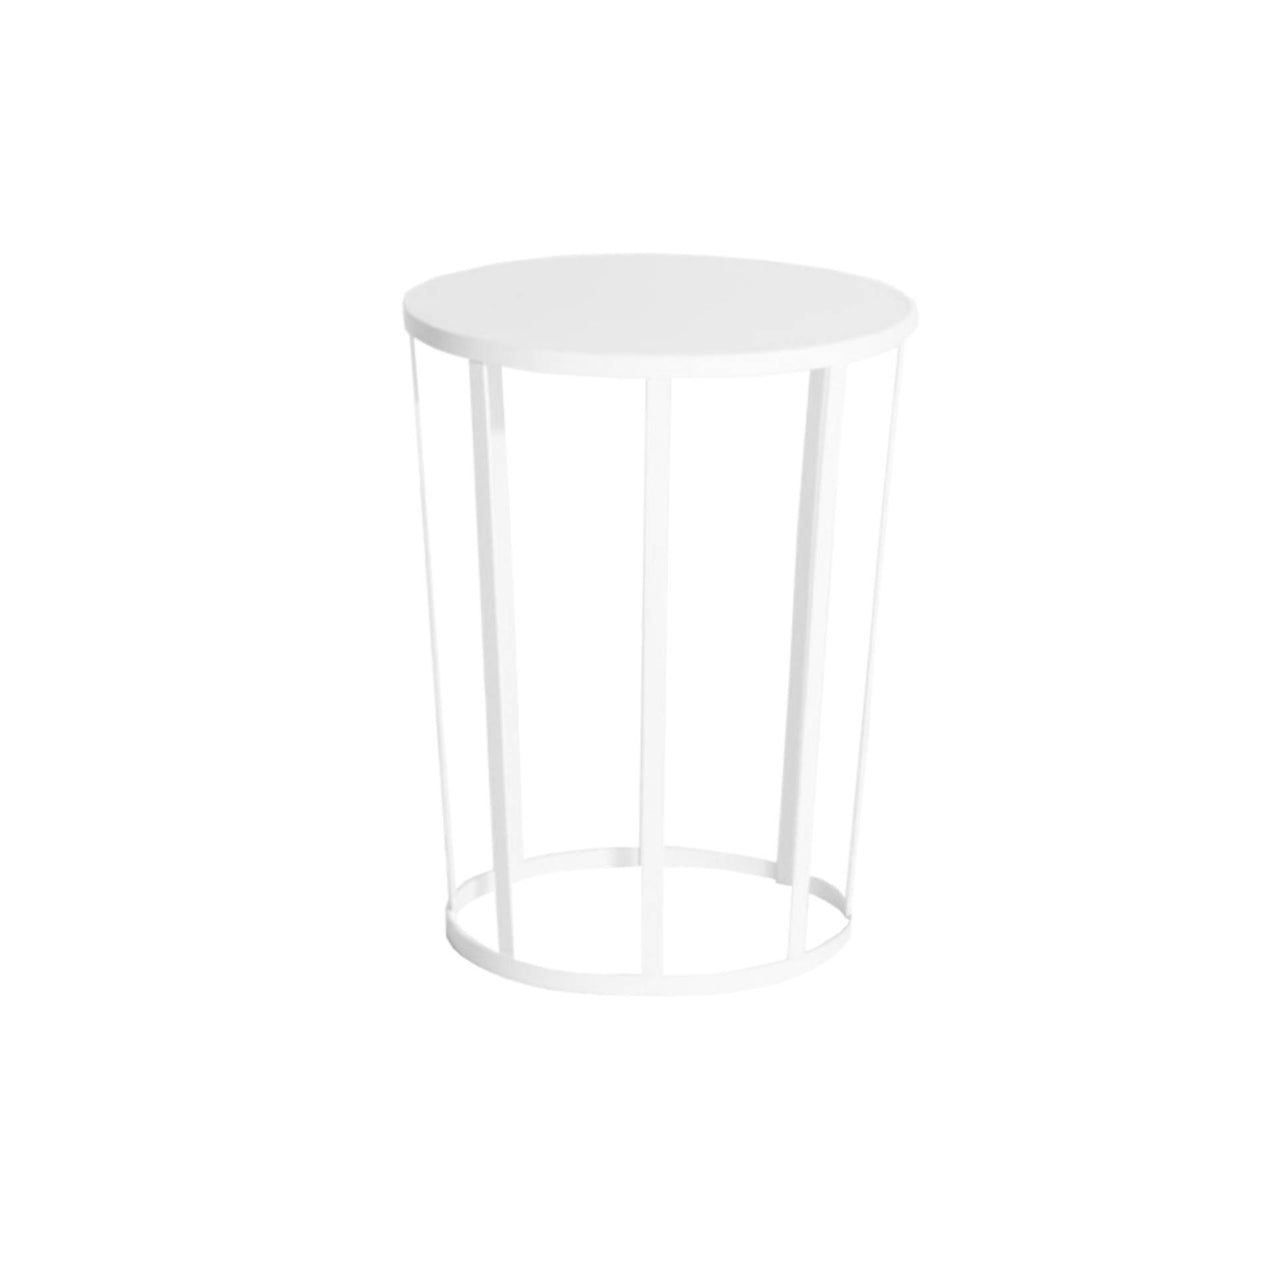 Hollo Side Table/Stool: White